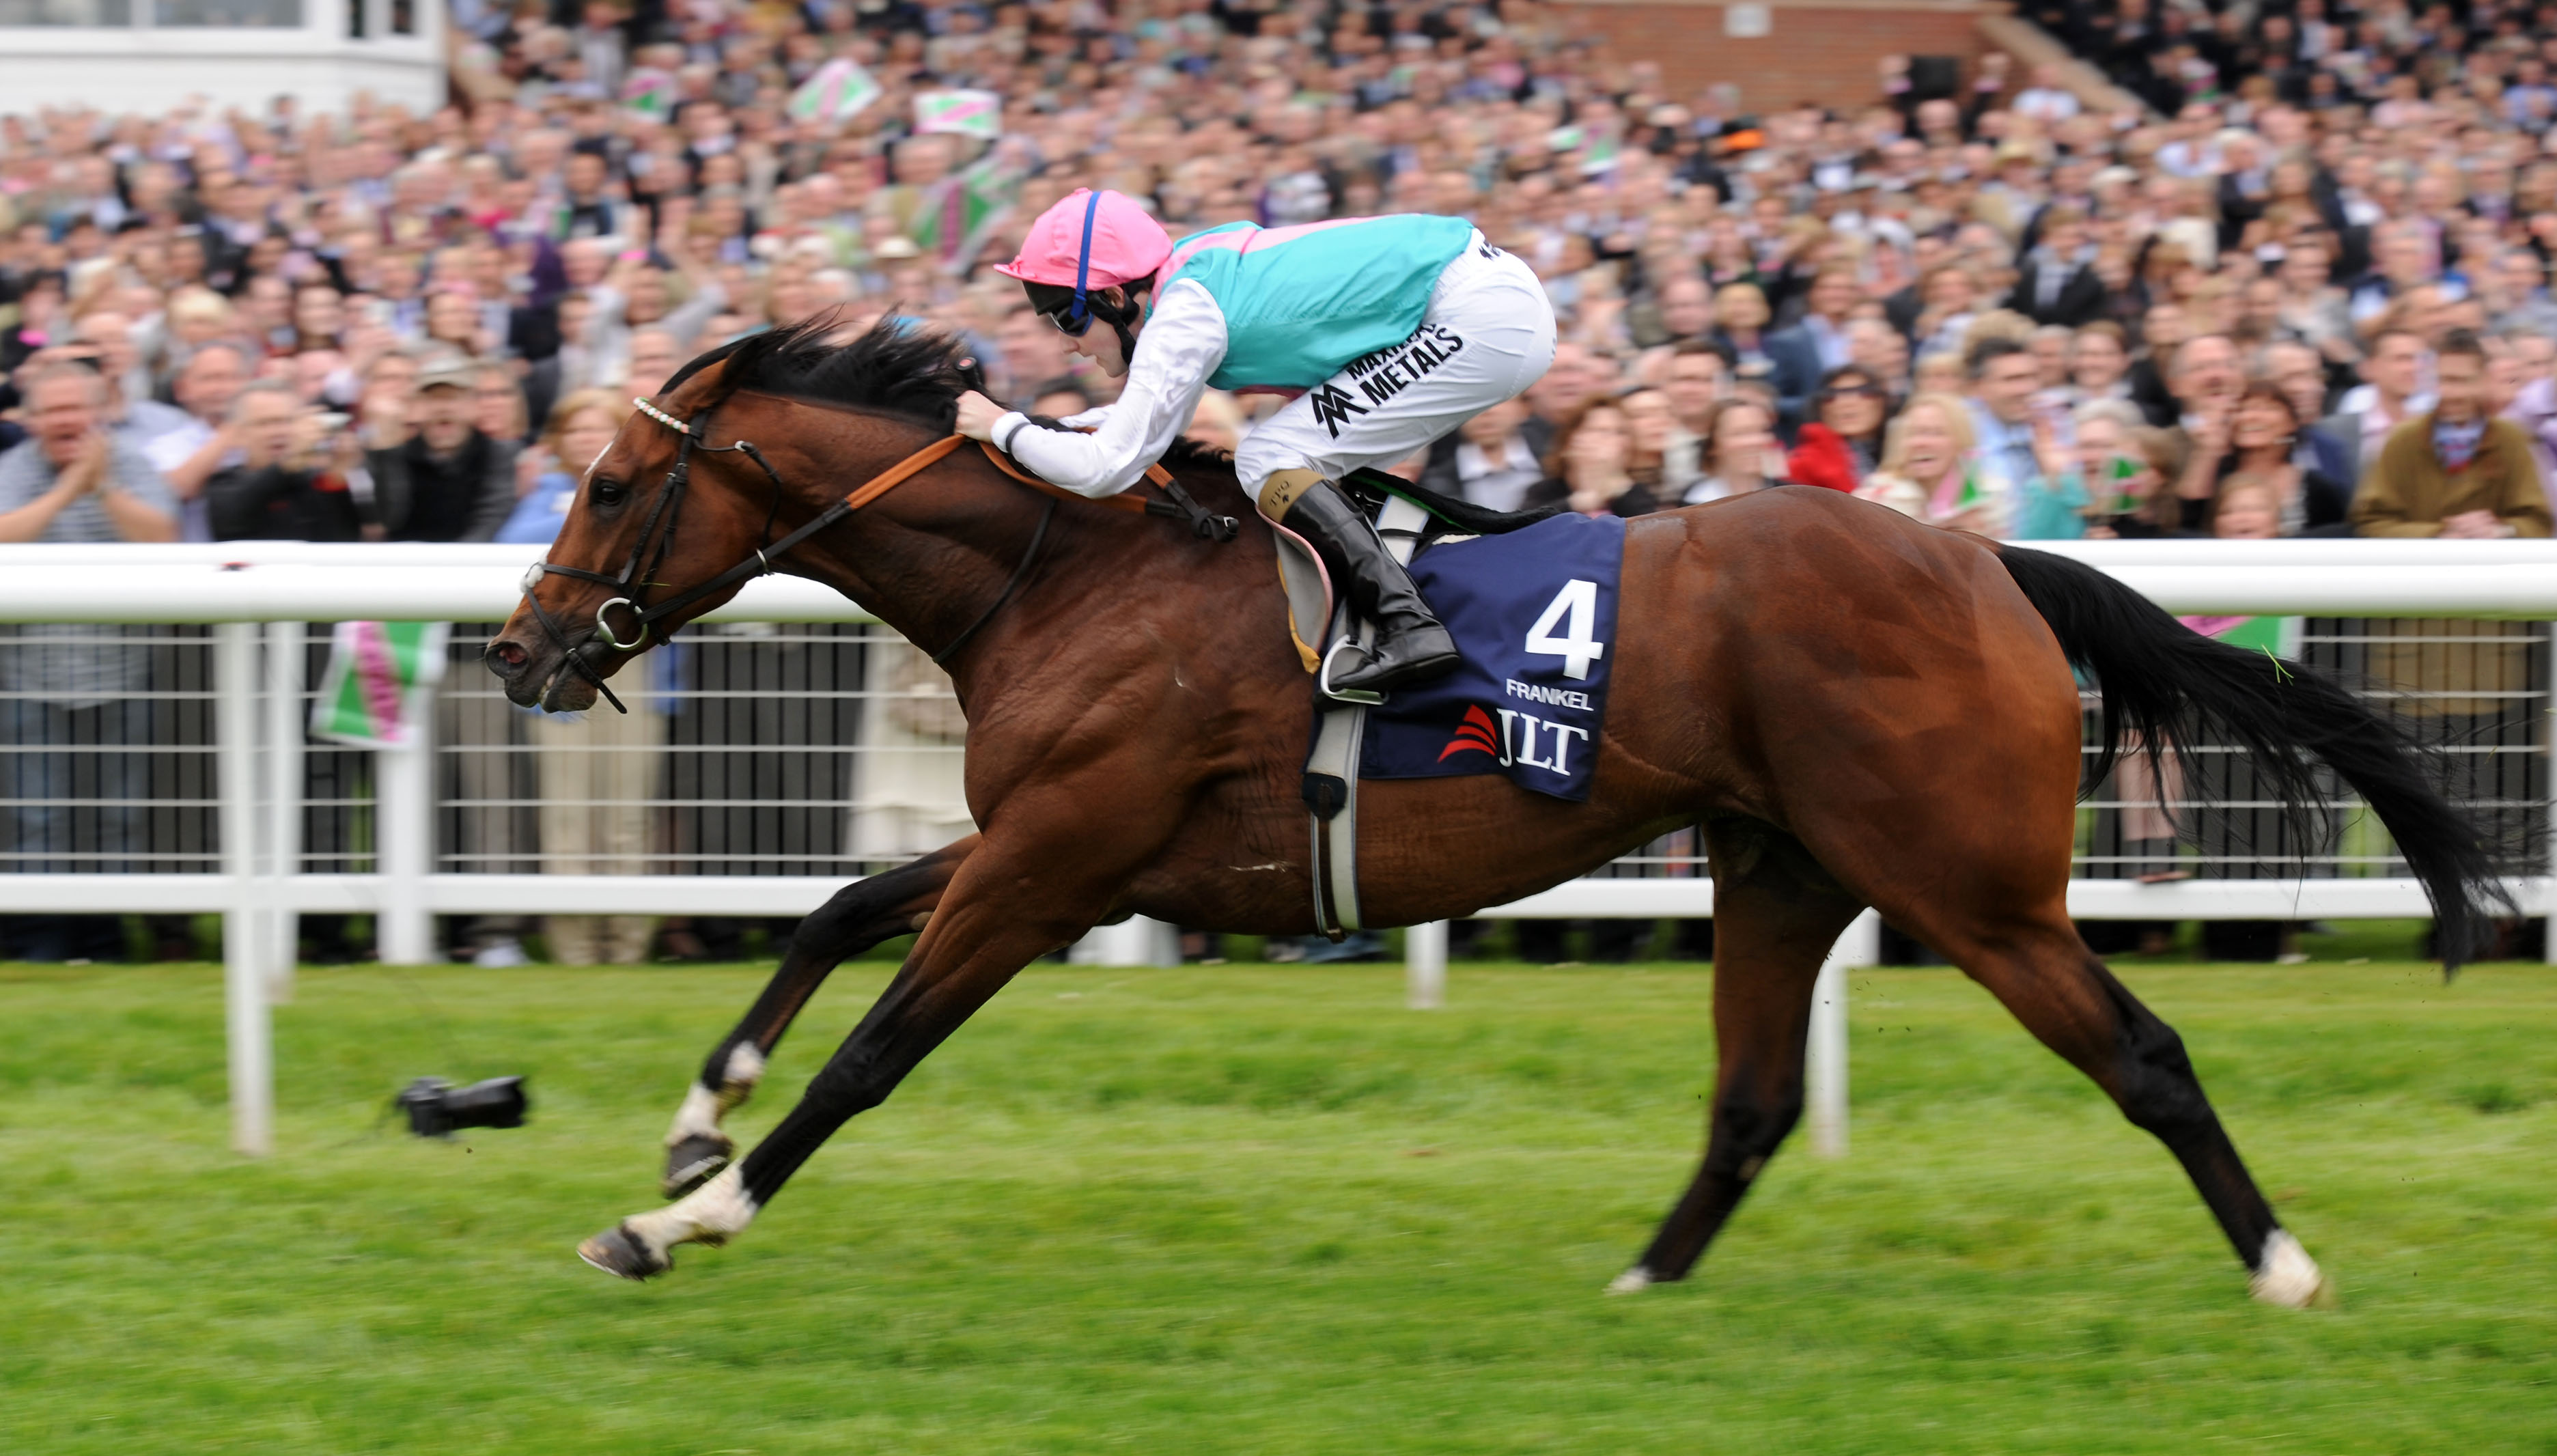 Frankel 2012 - Perfection in equine form at Newbury - Racingfotos